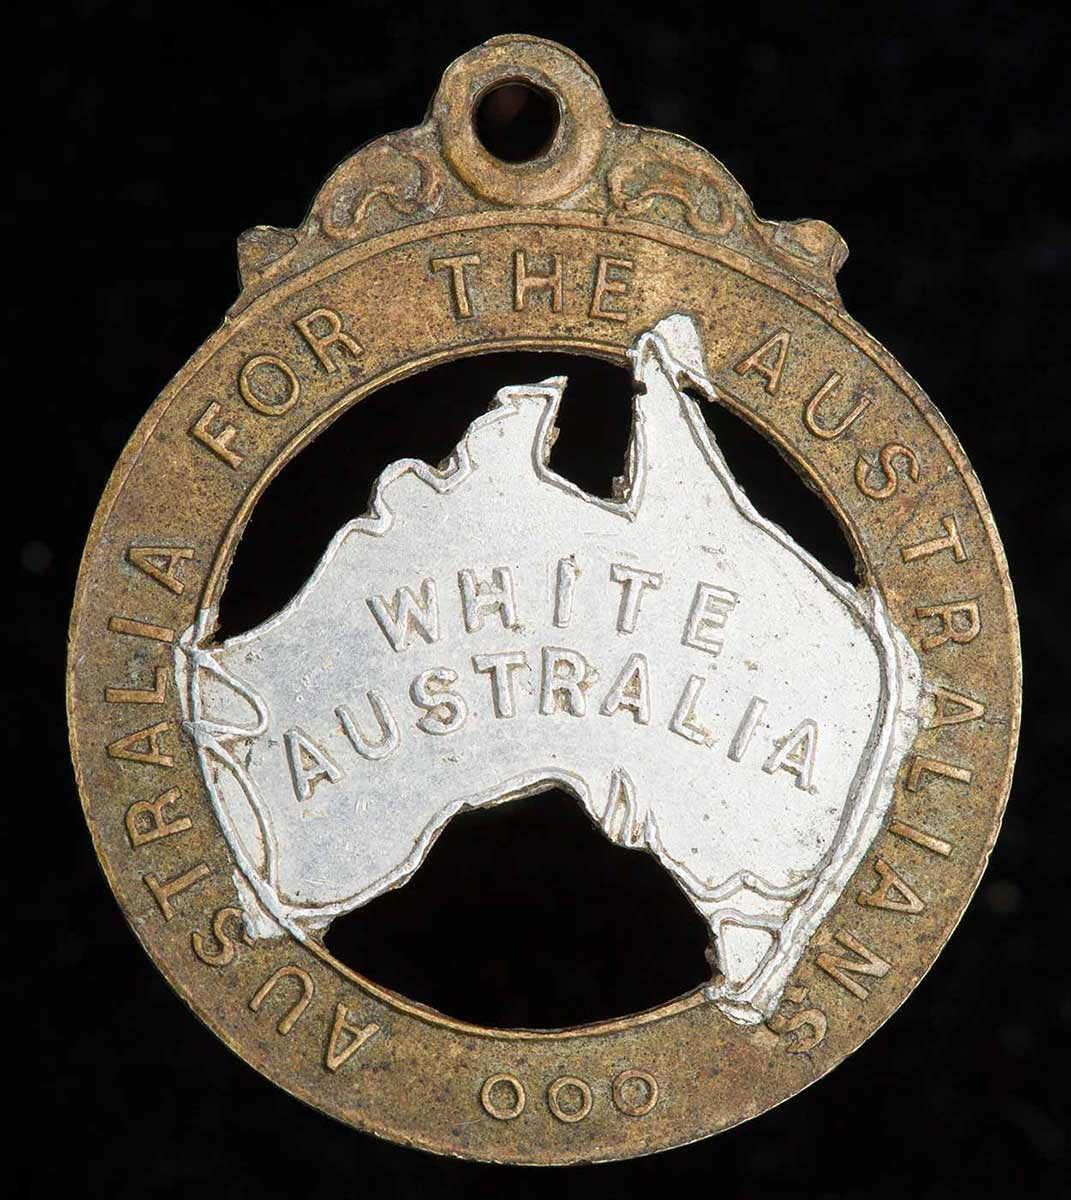 This 28mm-high badge has the words 'Australia for the Australians' stamped on the rim and the words 'White Australia' stamped on silver-painted representation of the Australian continent in the middle. - click to view larger image